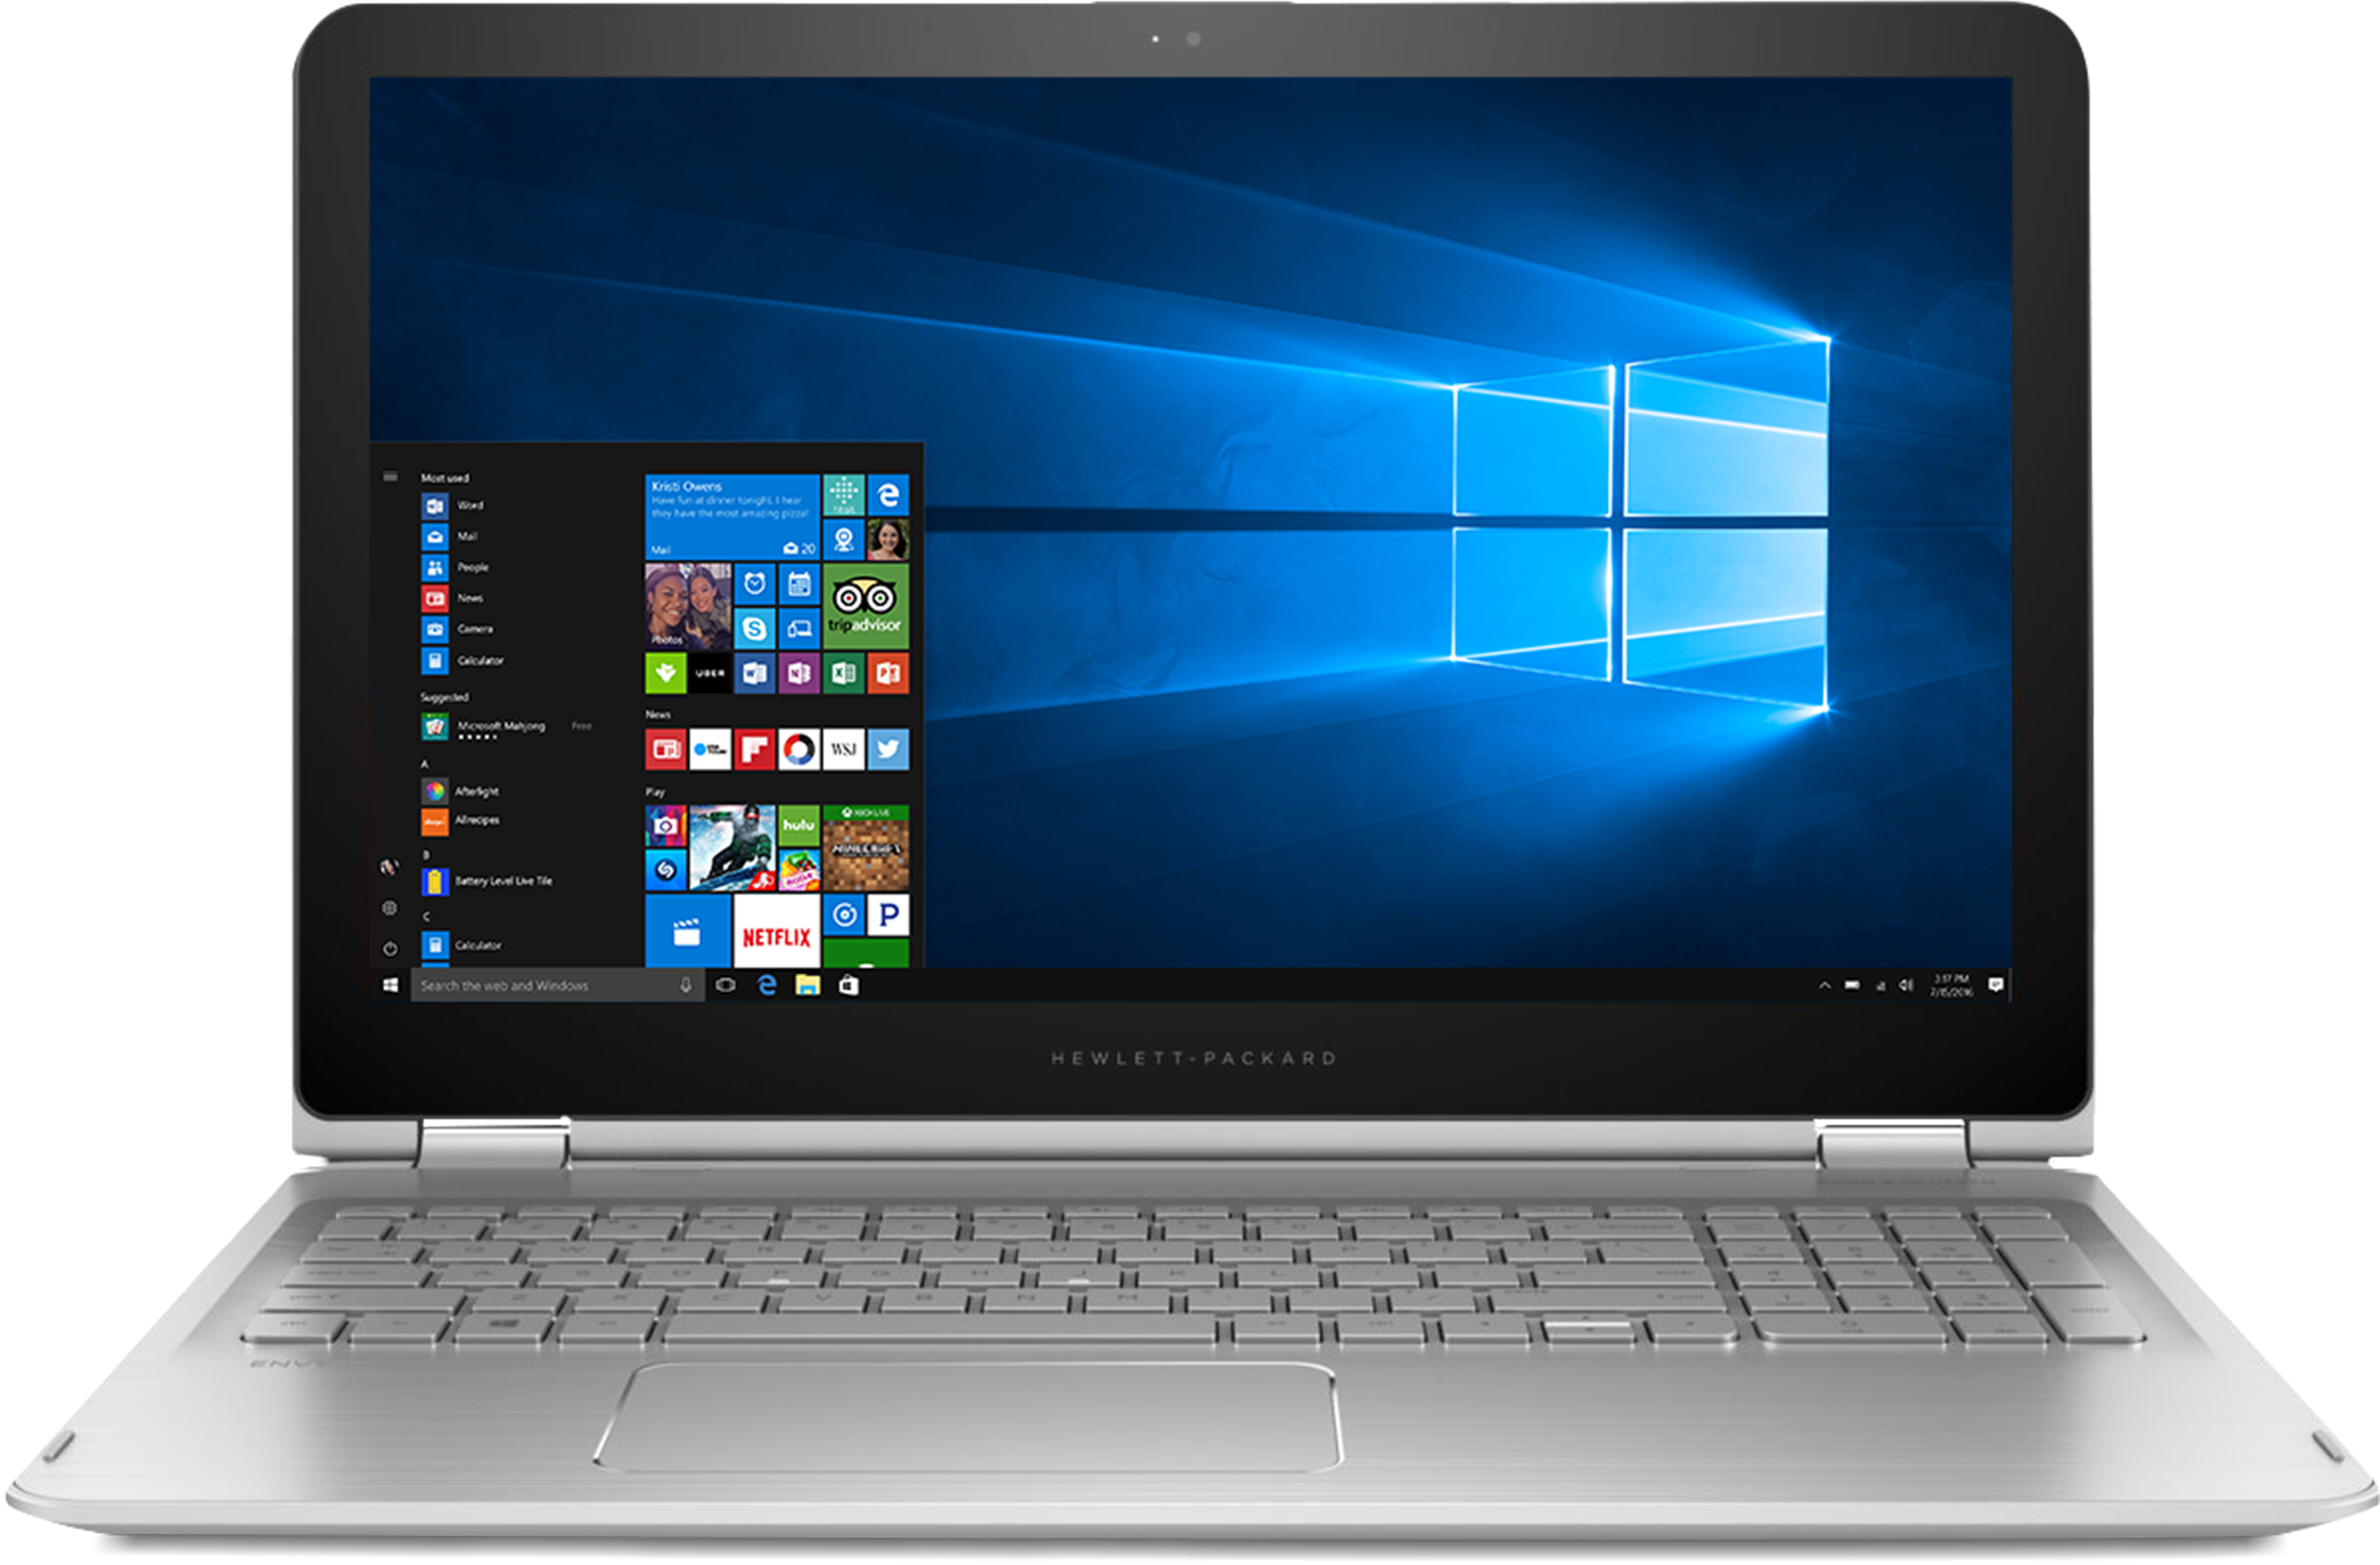 HP ENVY x360 Convertible 15-w291ms 2 in 1 PC Deal